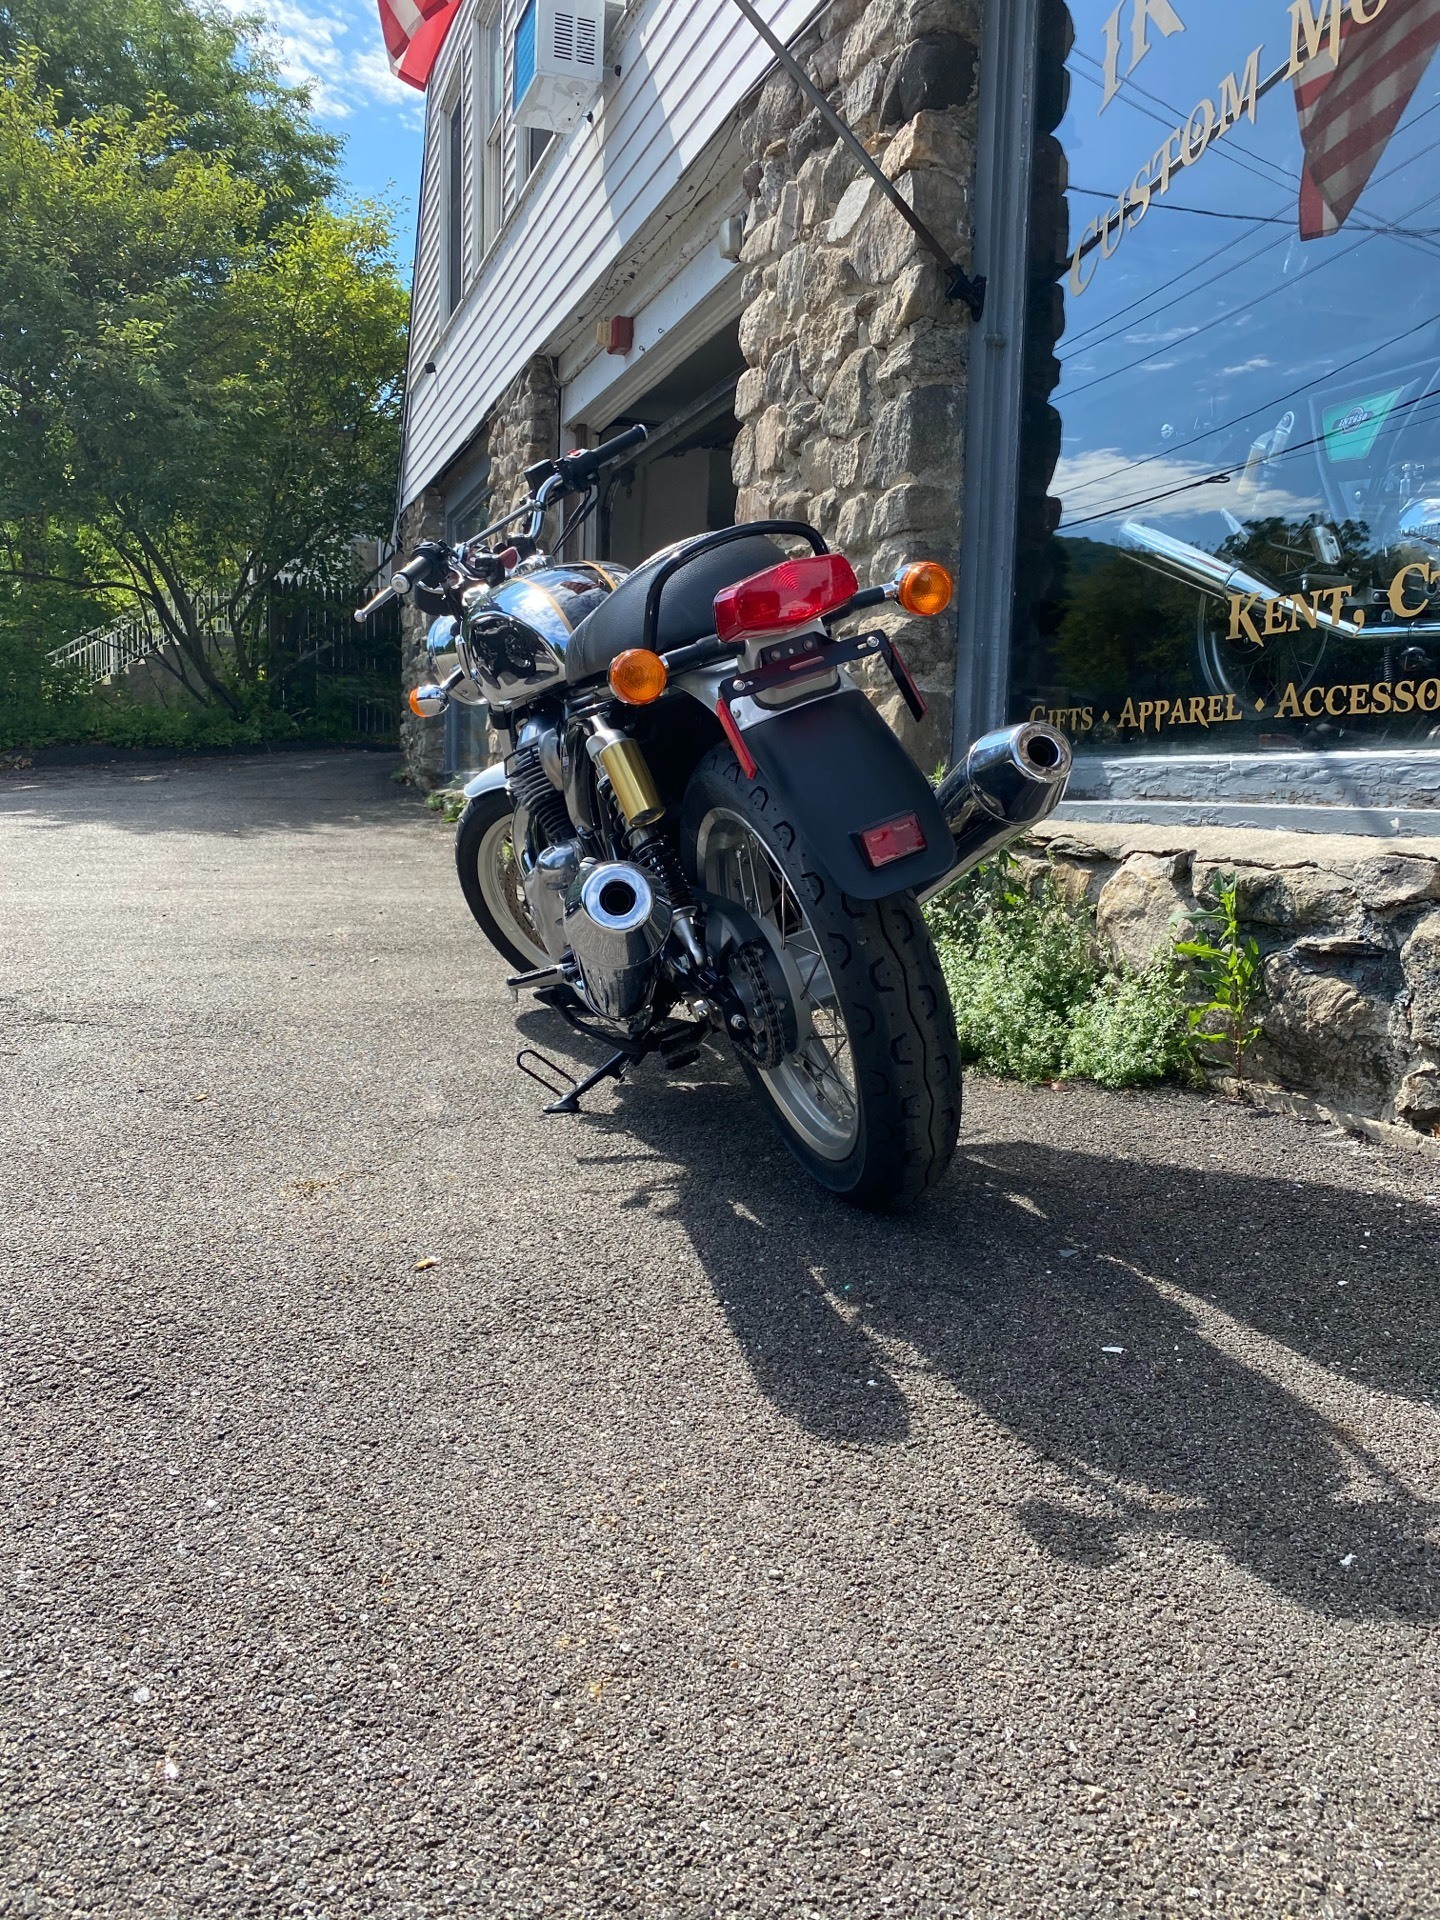 2020 Royal Enfield Interceptor 650 in Kent, Connecticut - Photo 4